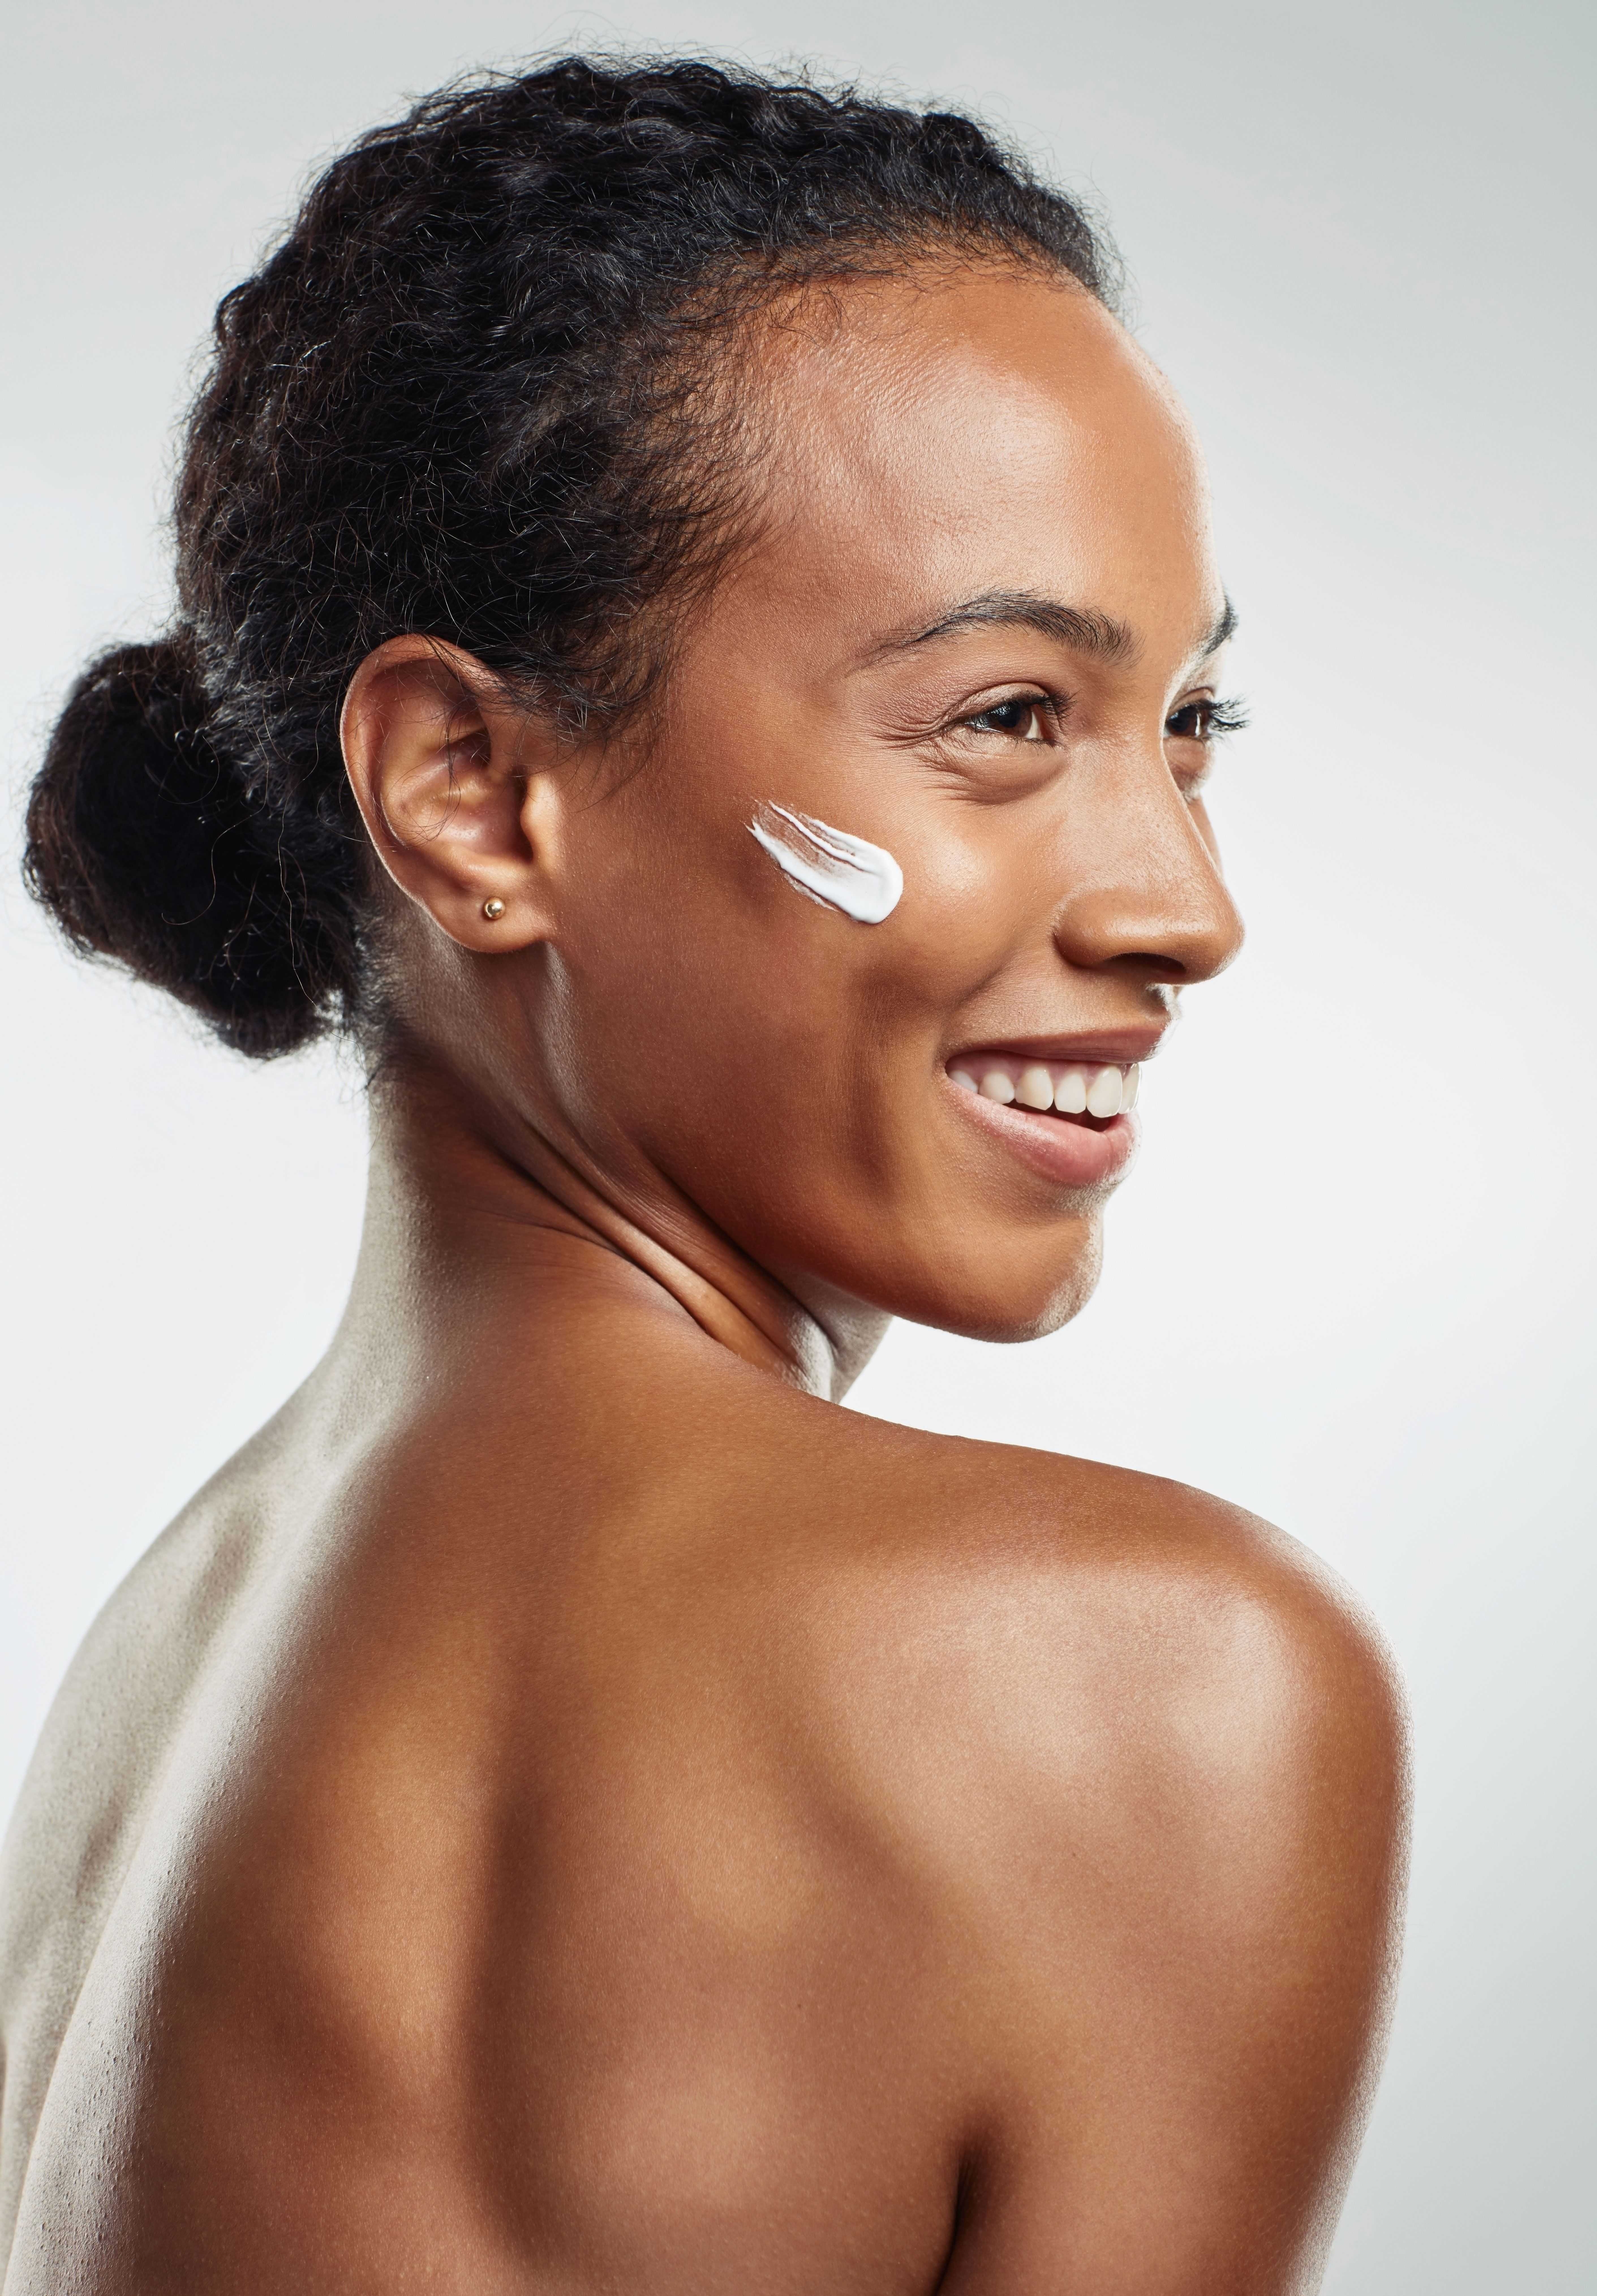 How To Get Rid of Whiteheads - Best Whitehead Removal Products